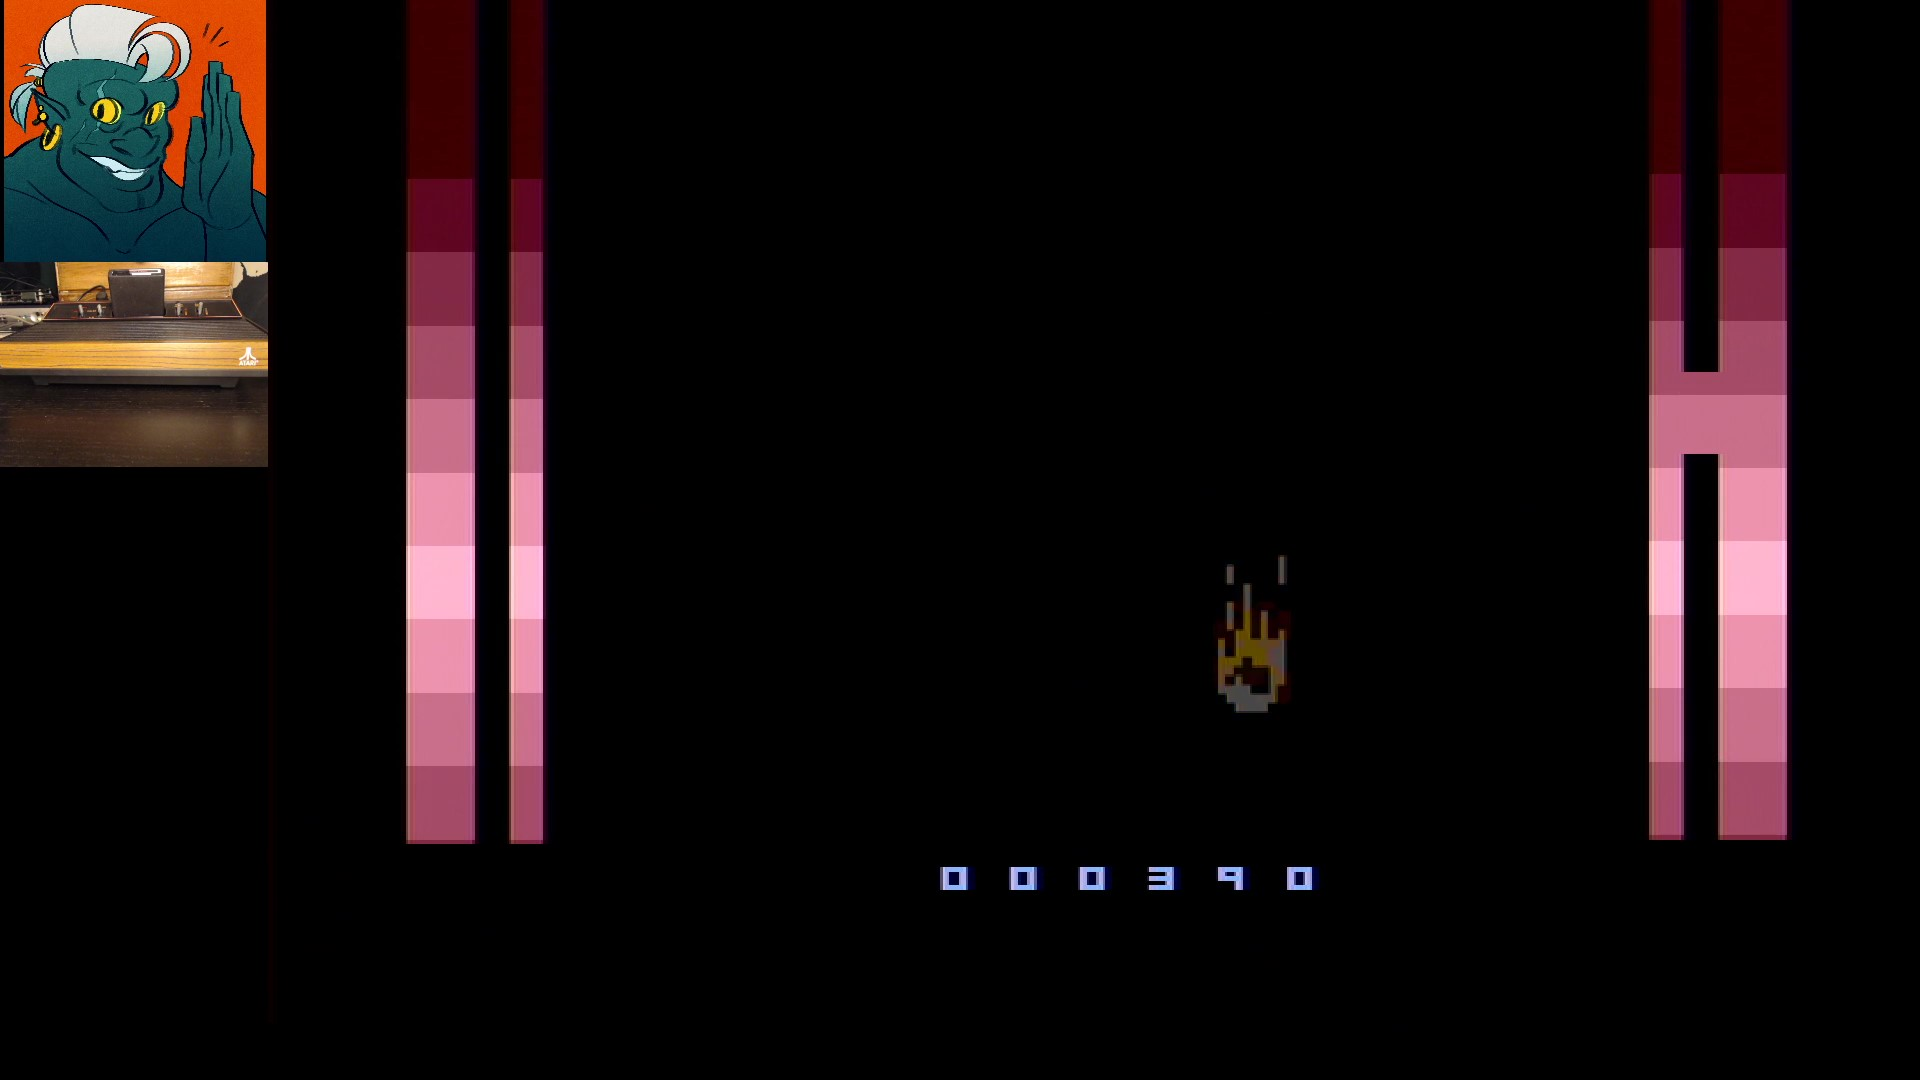 AwesomeOgre: A Roach In Space (Atari 2600) 390 points on 2019-11-25 07:31:29